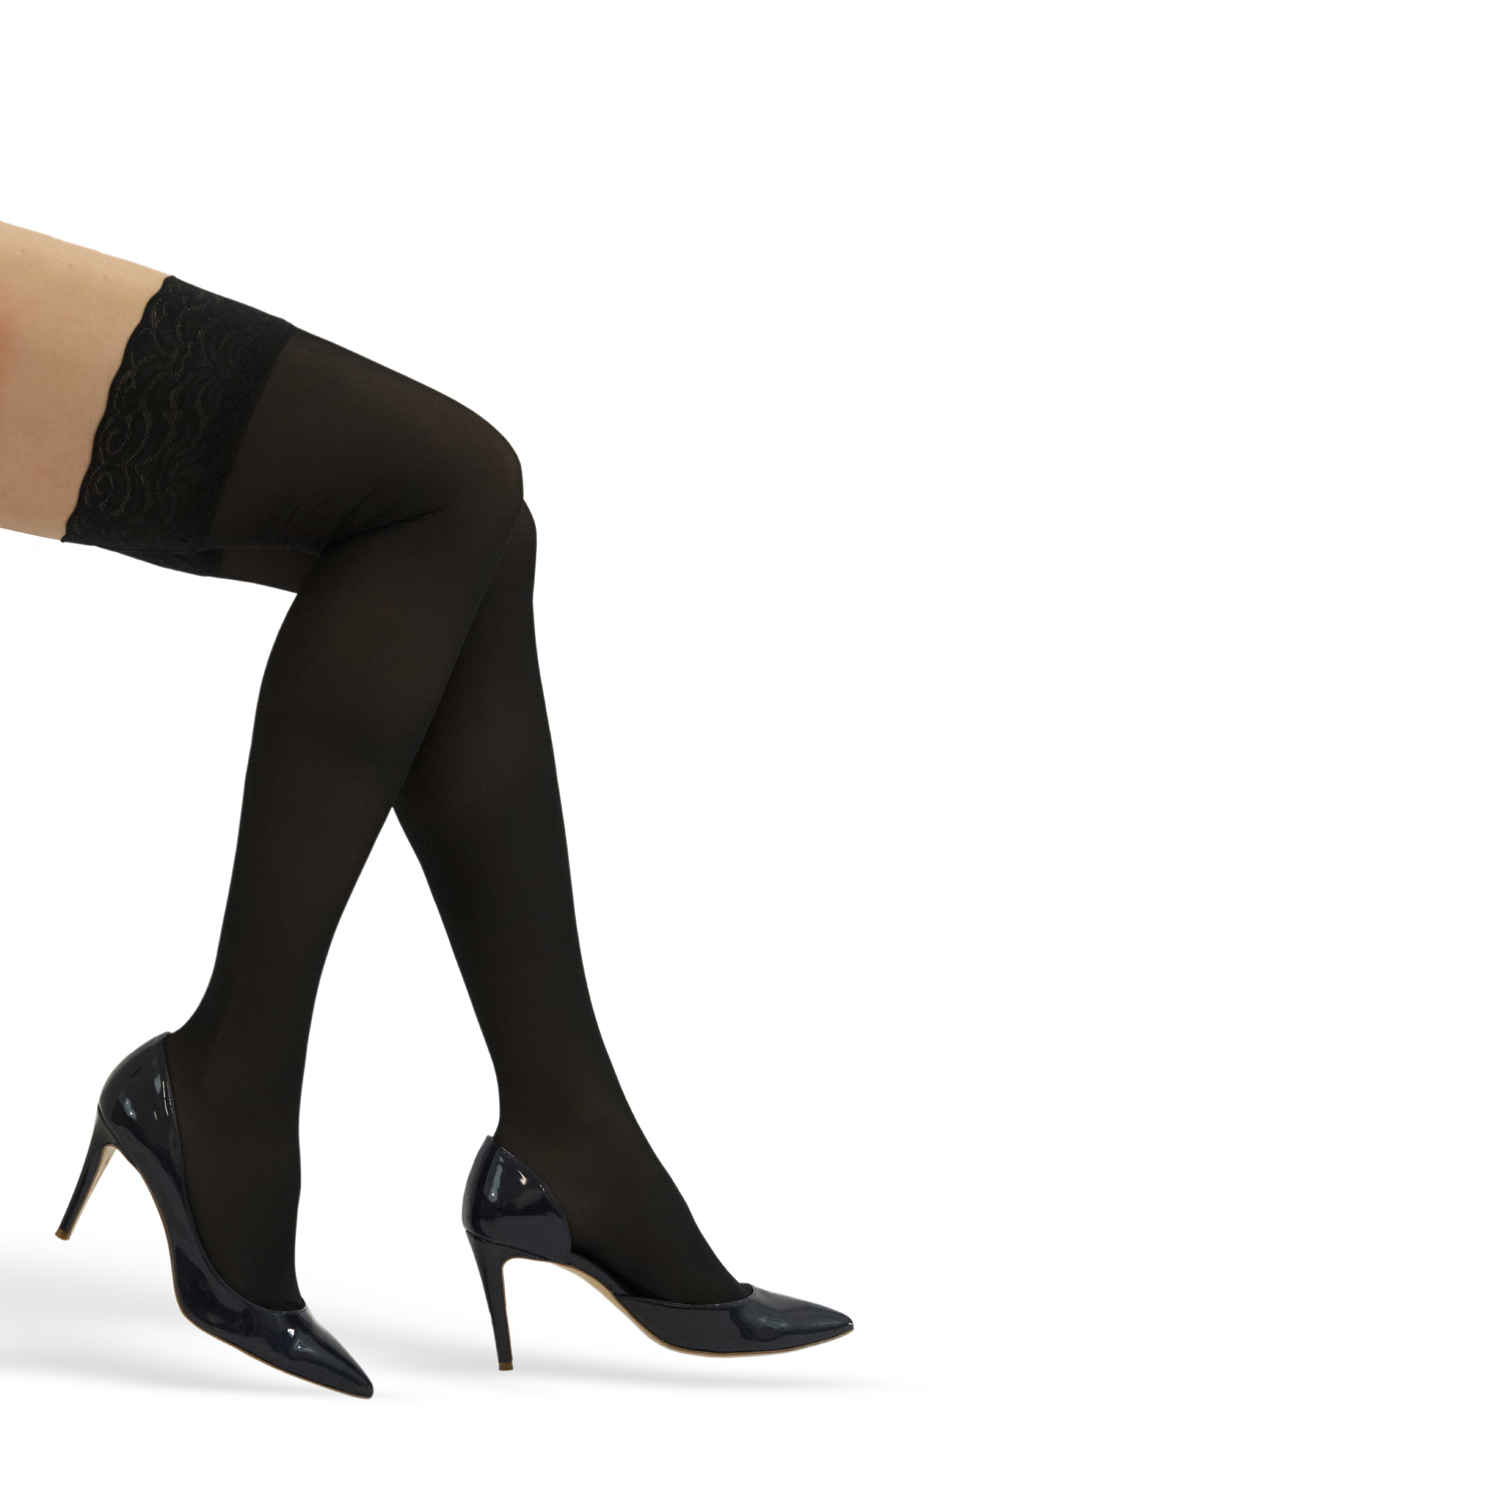 ITA-MED Style H-80 Lace Top Sheer Thigh Highs